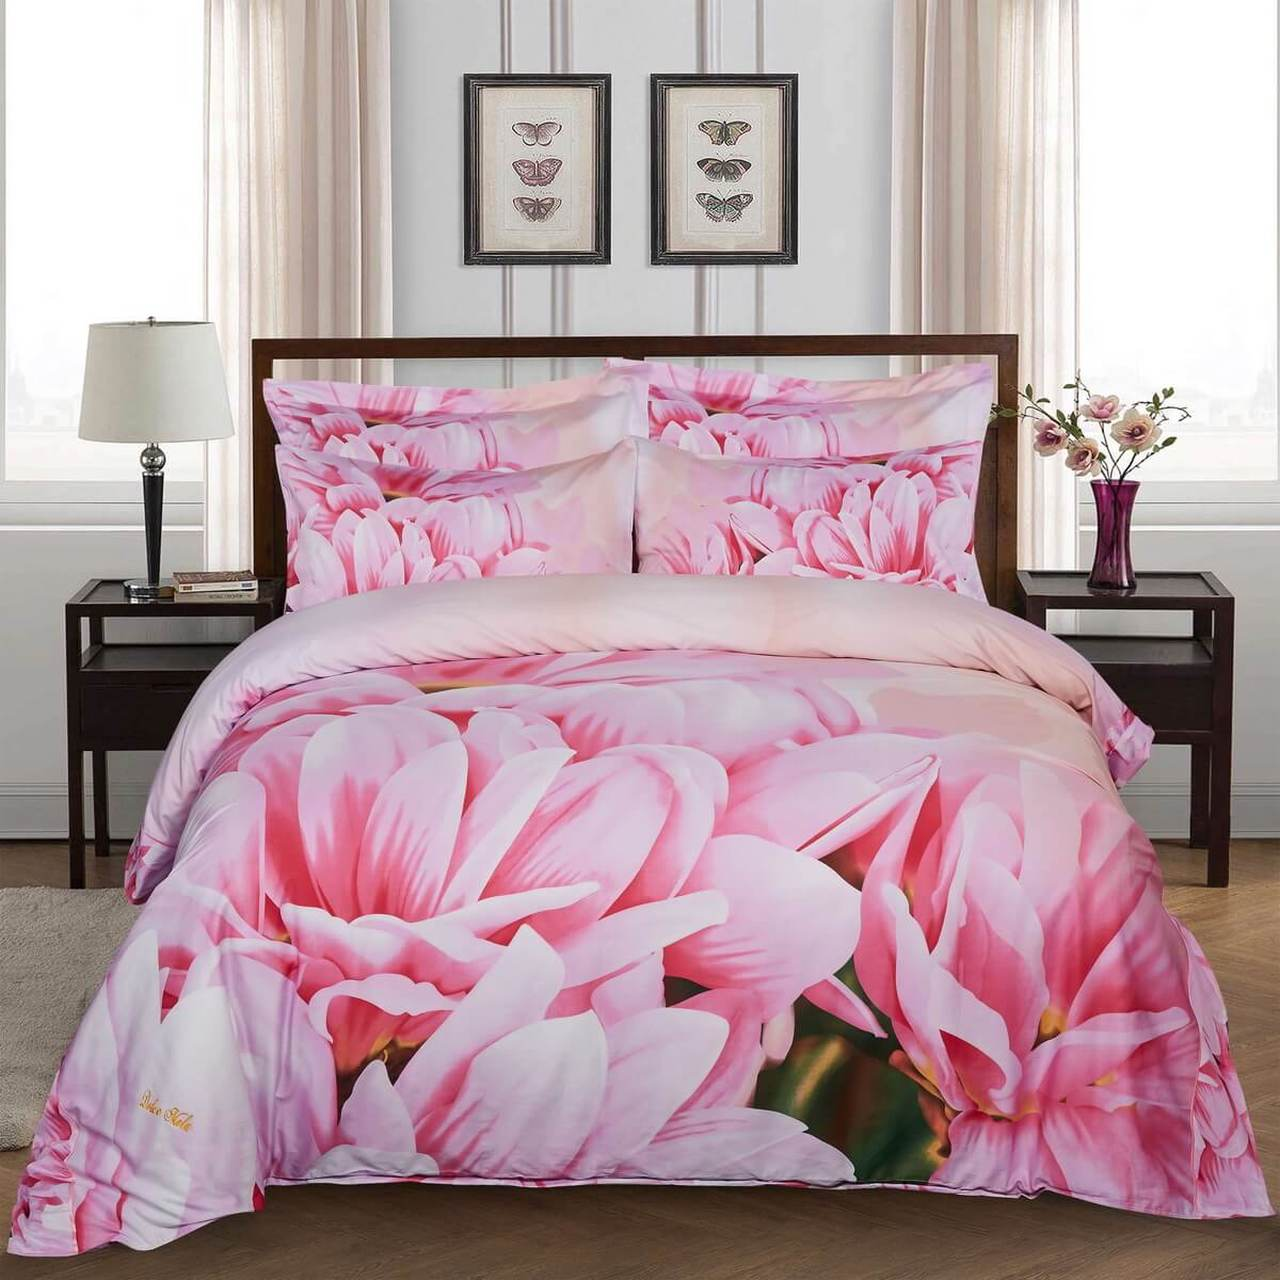 Grown Up Bedding